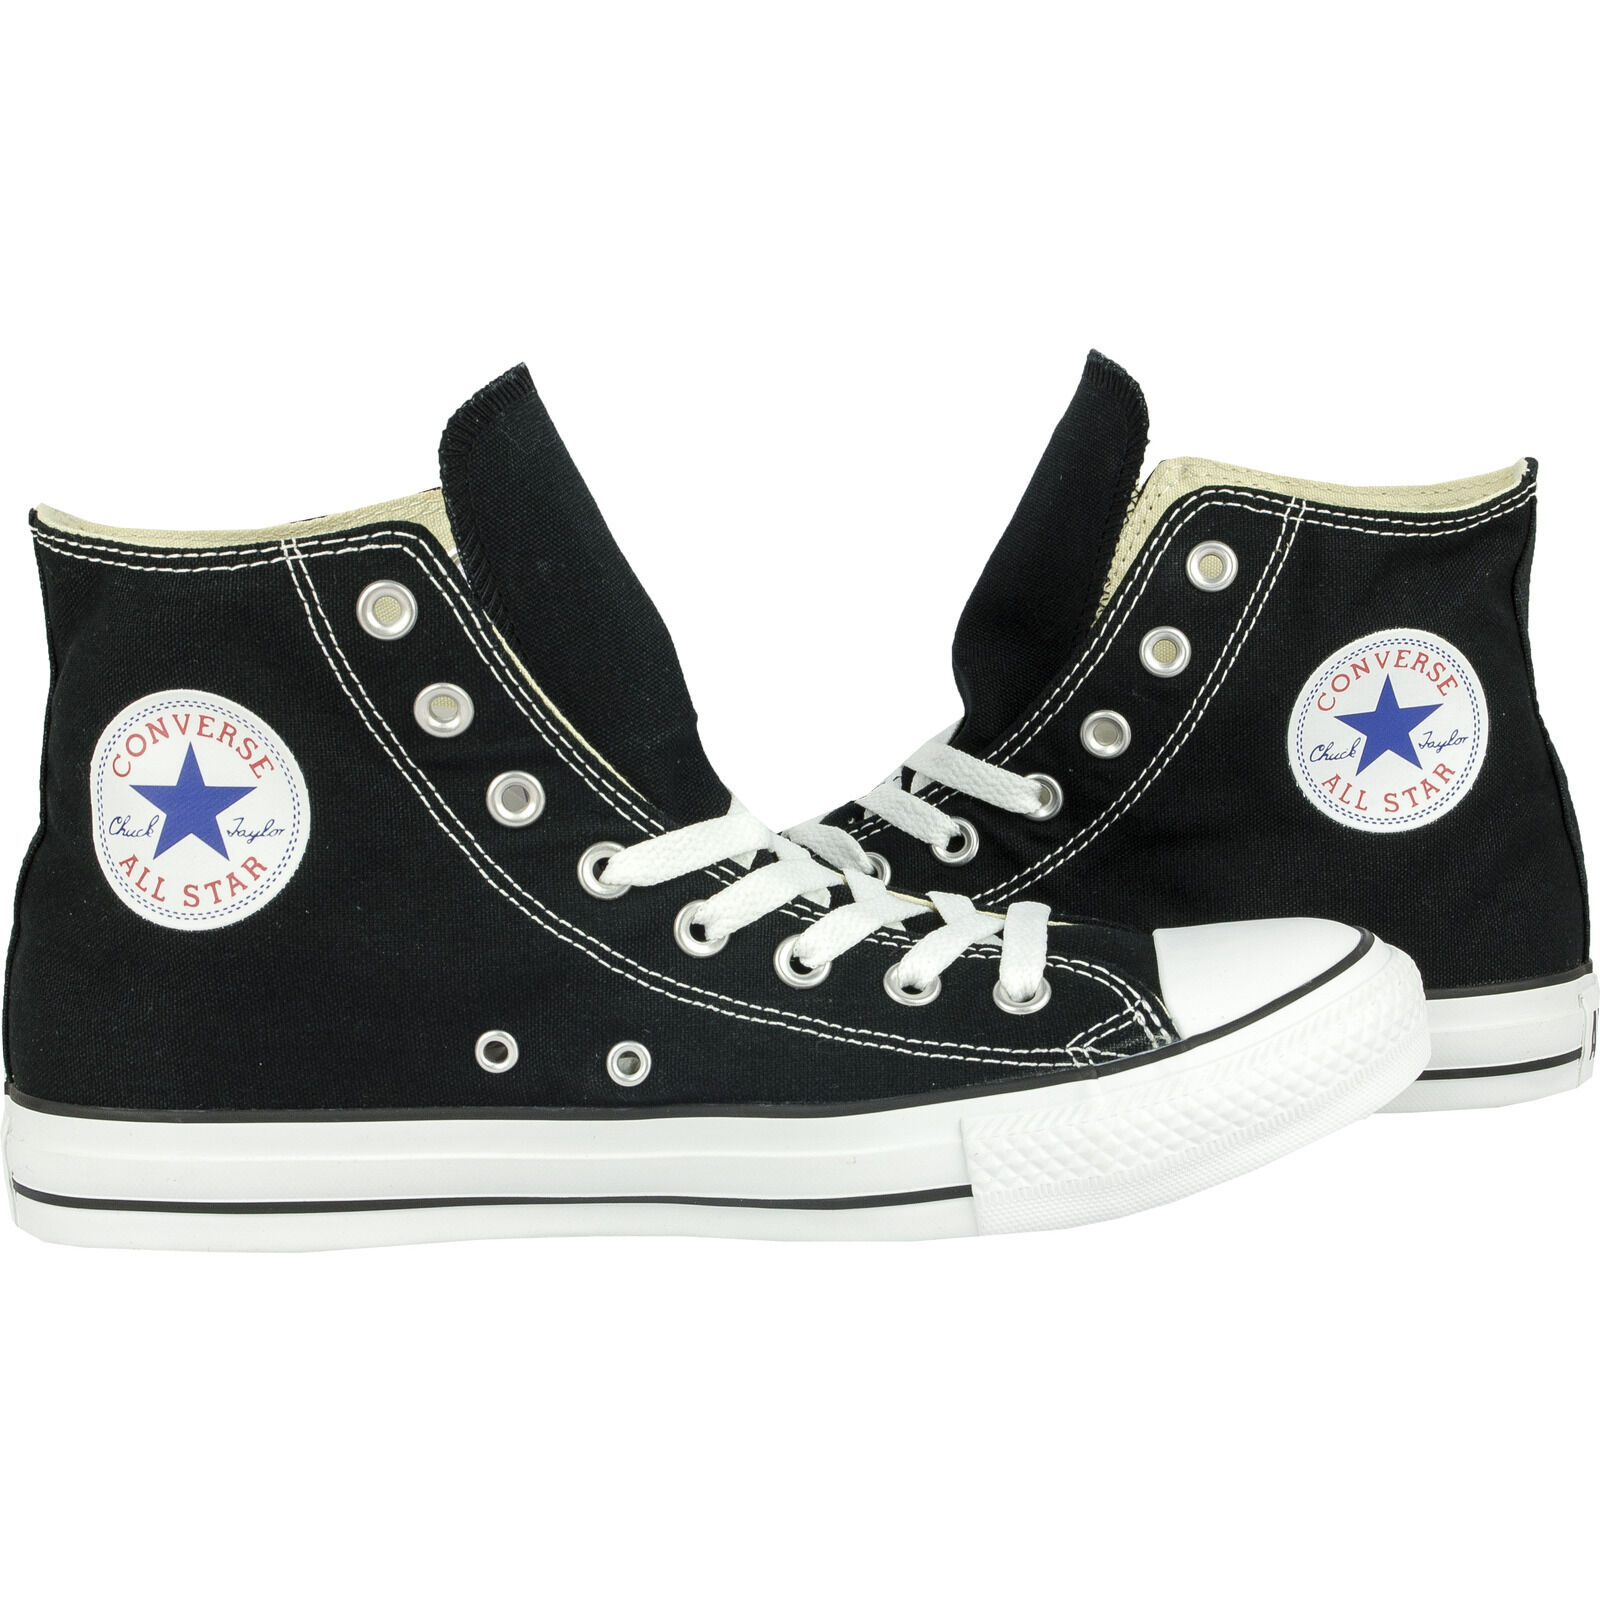 Converse Classic Chuck Taylor All Star HI High Black Trainer Lace Up NEW